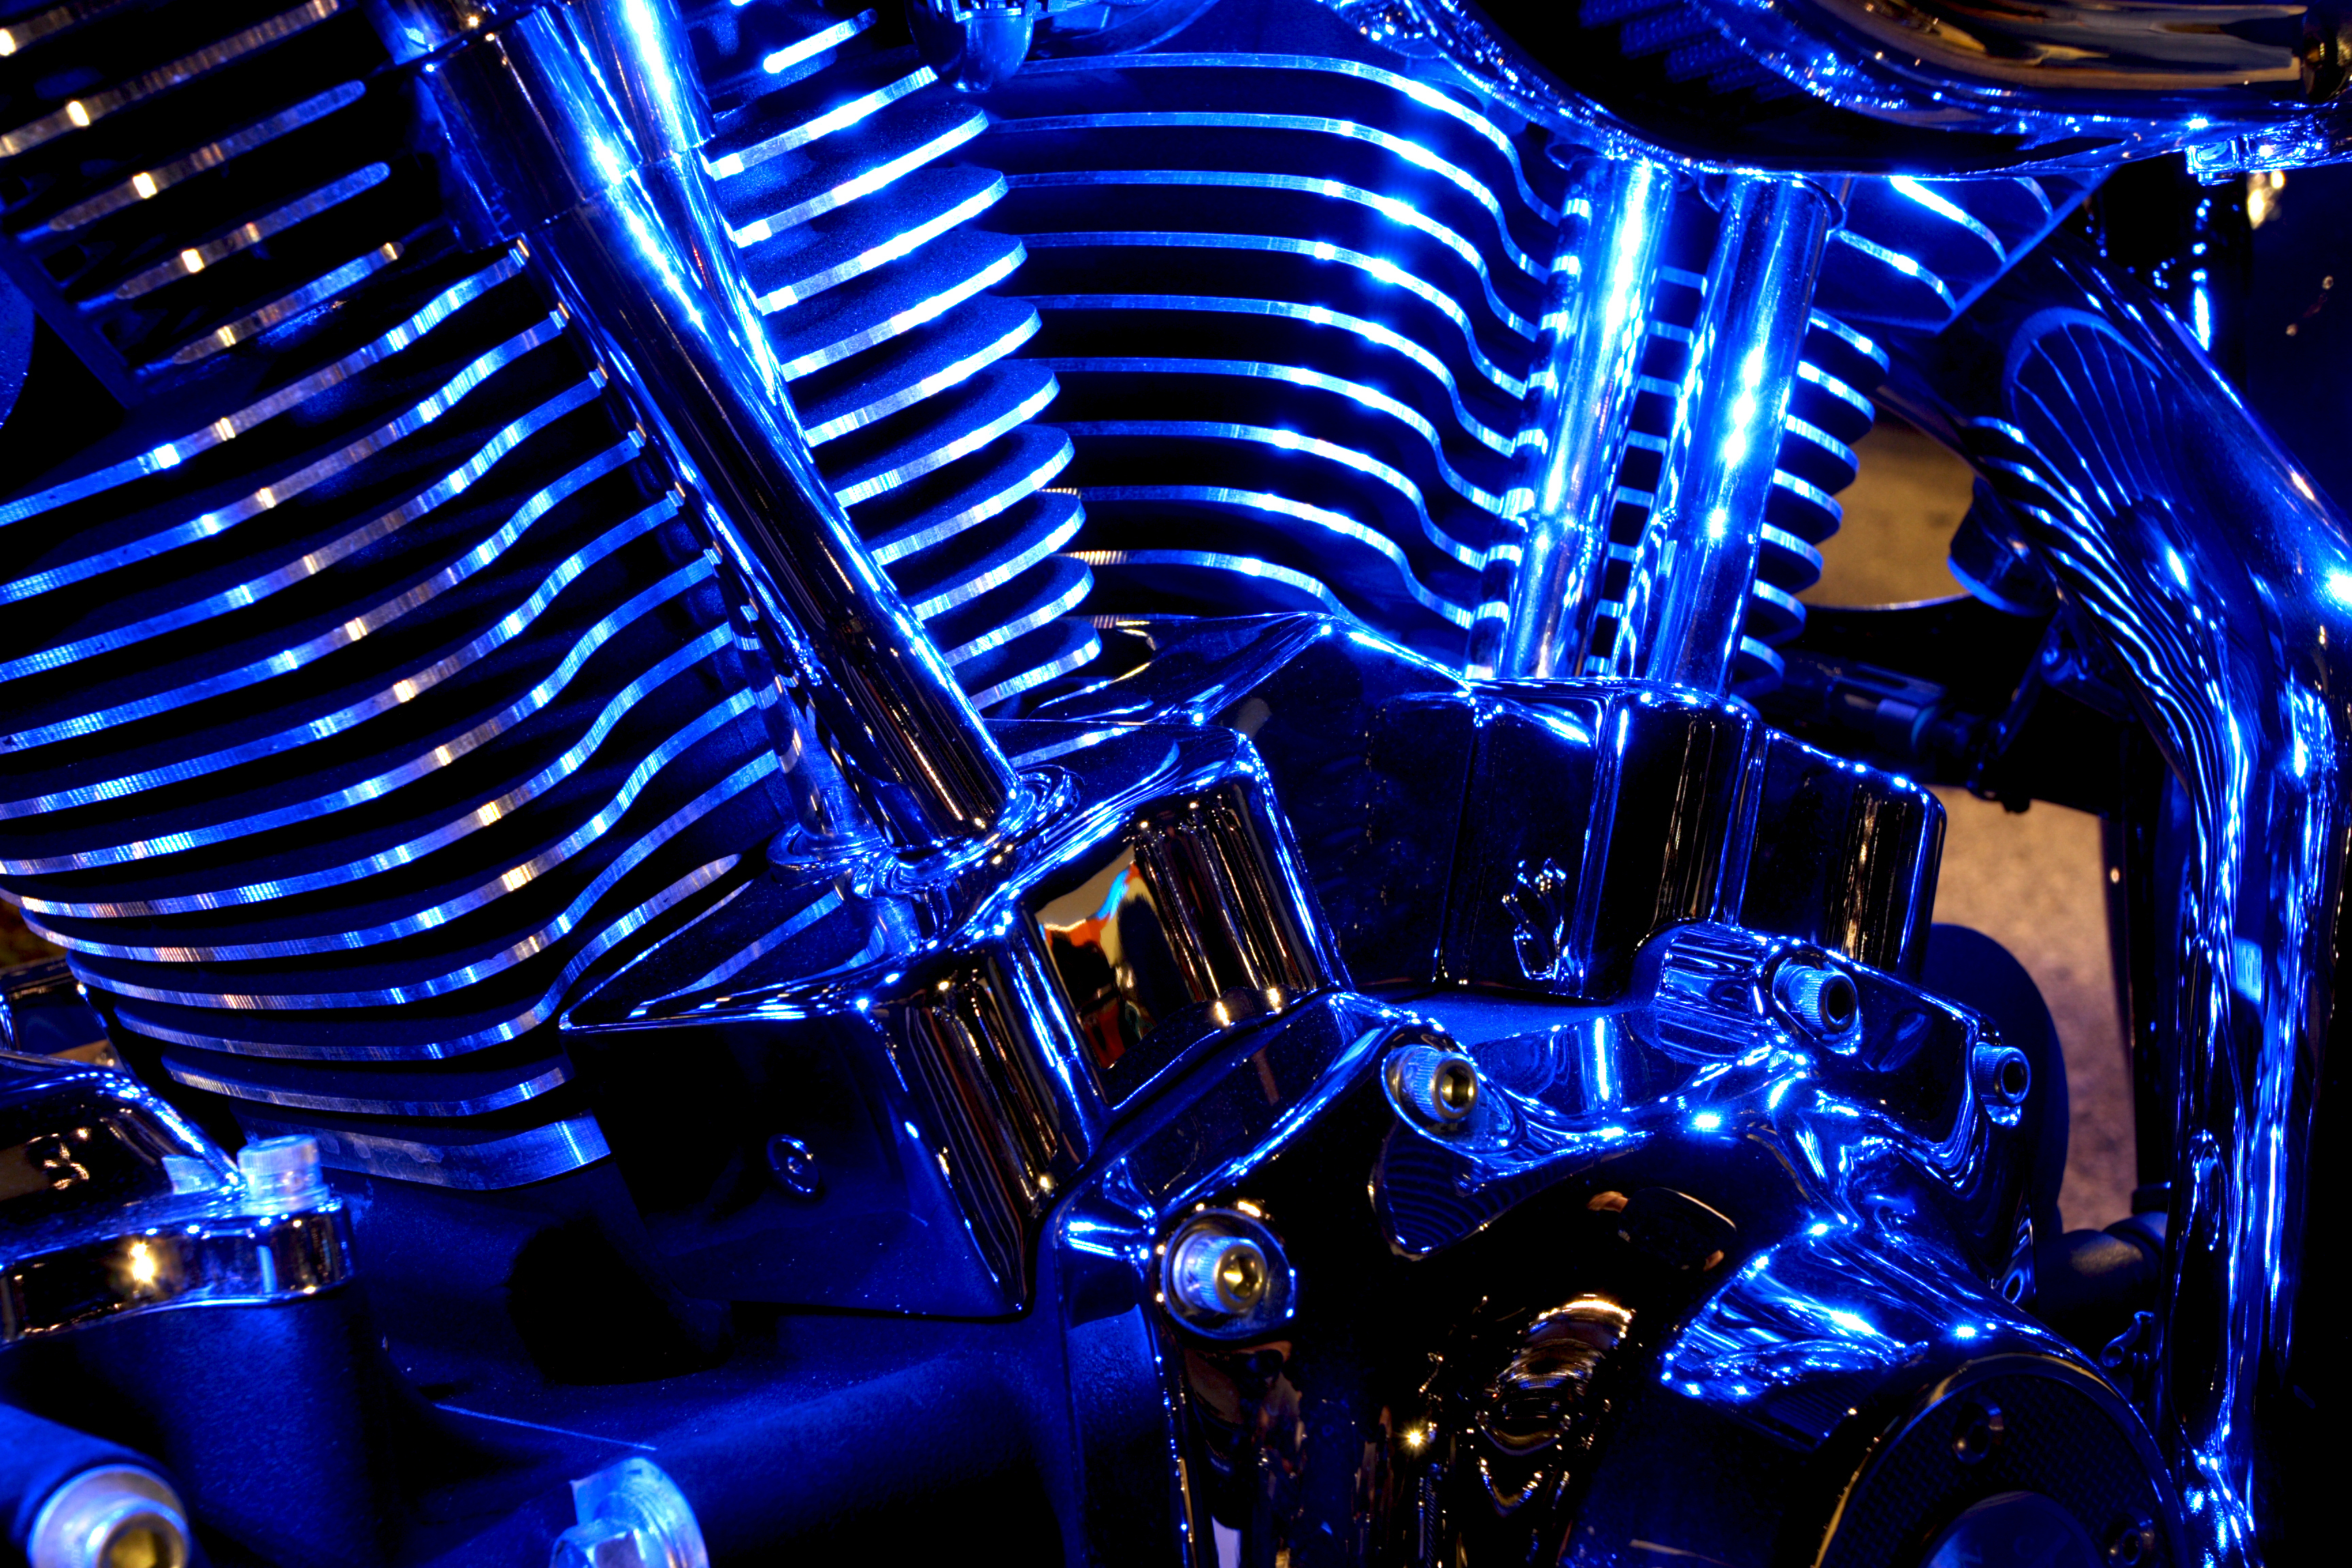 Led Lights For Motorcycles : New motorcycle law in texas clears up led light confusion